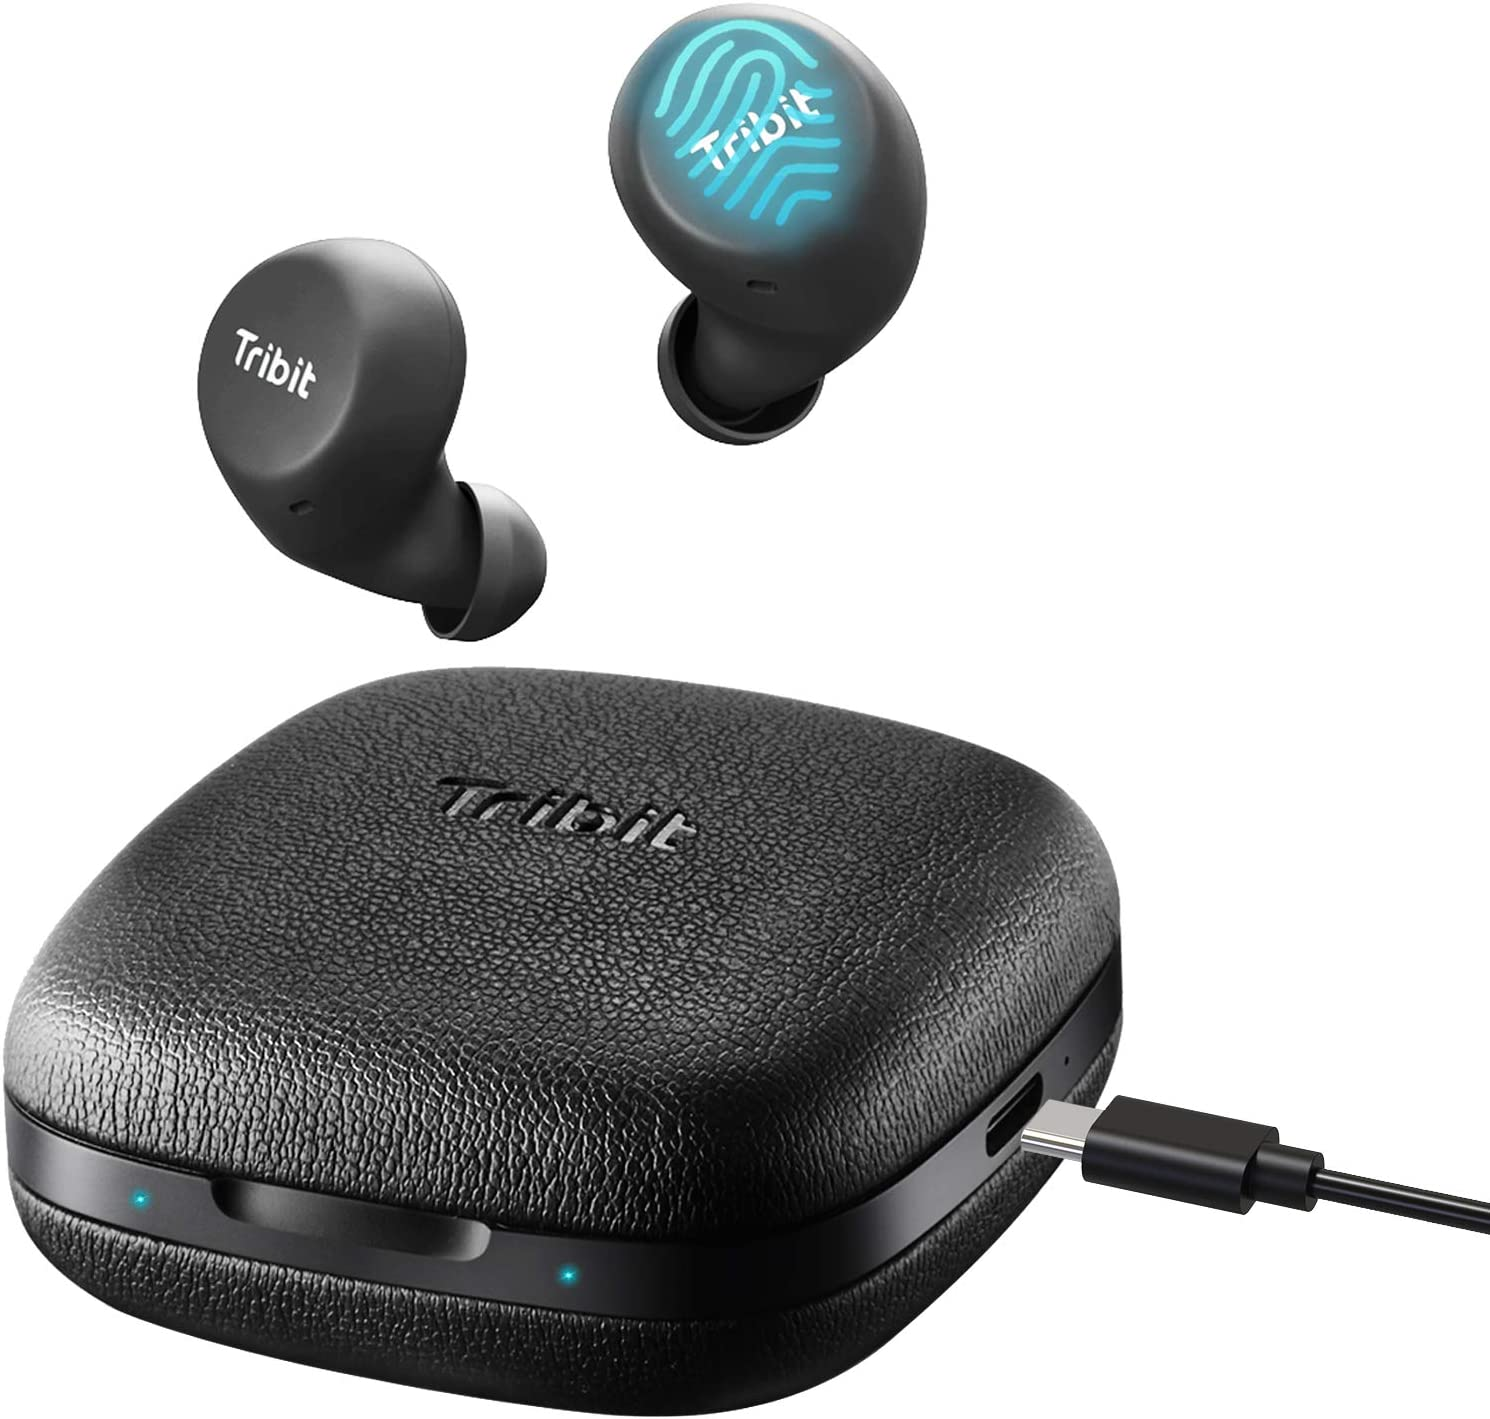 Tribit FlyBuds Wireless Earbuds – 5.0 Bluetooth Earbuds Touch Control Type-C 36Hrs Playtime Built-in Mic CVC 6.0,IPX5 Waterproof True Wireless Earbuds Passive Noise Canceling for Gym Running,Black